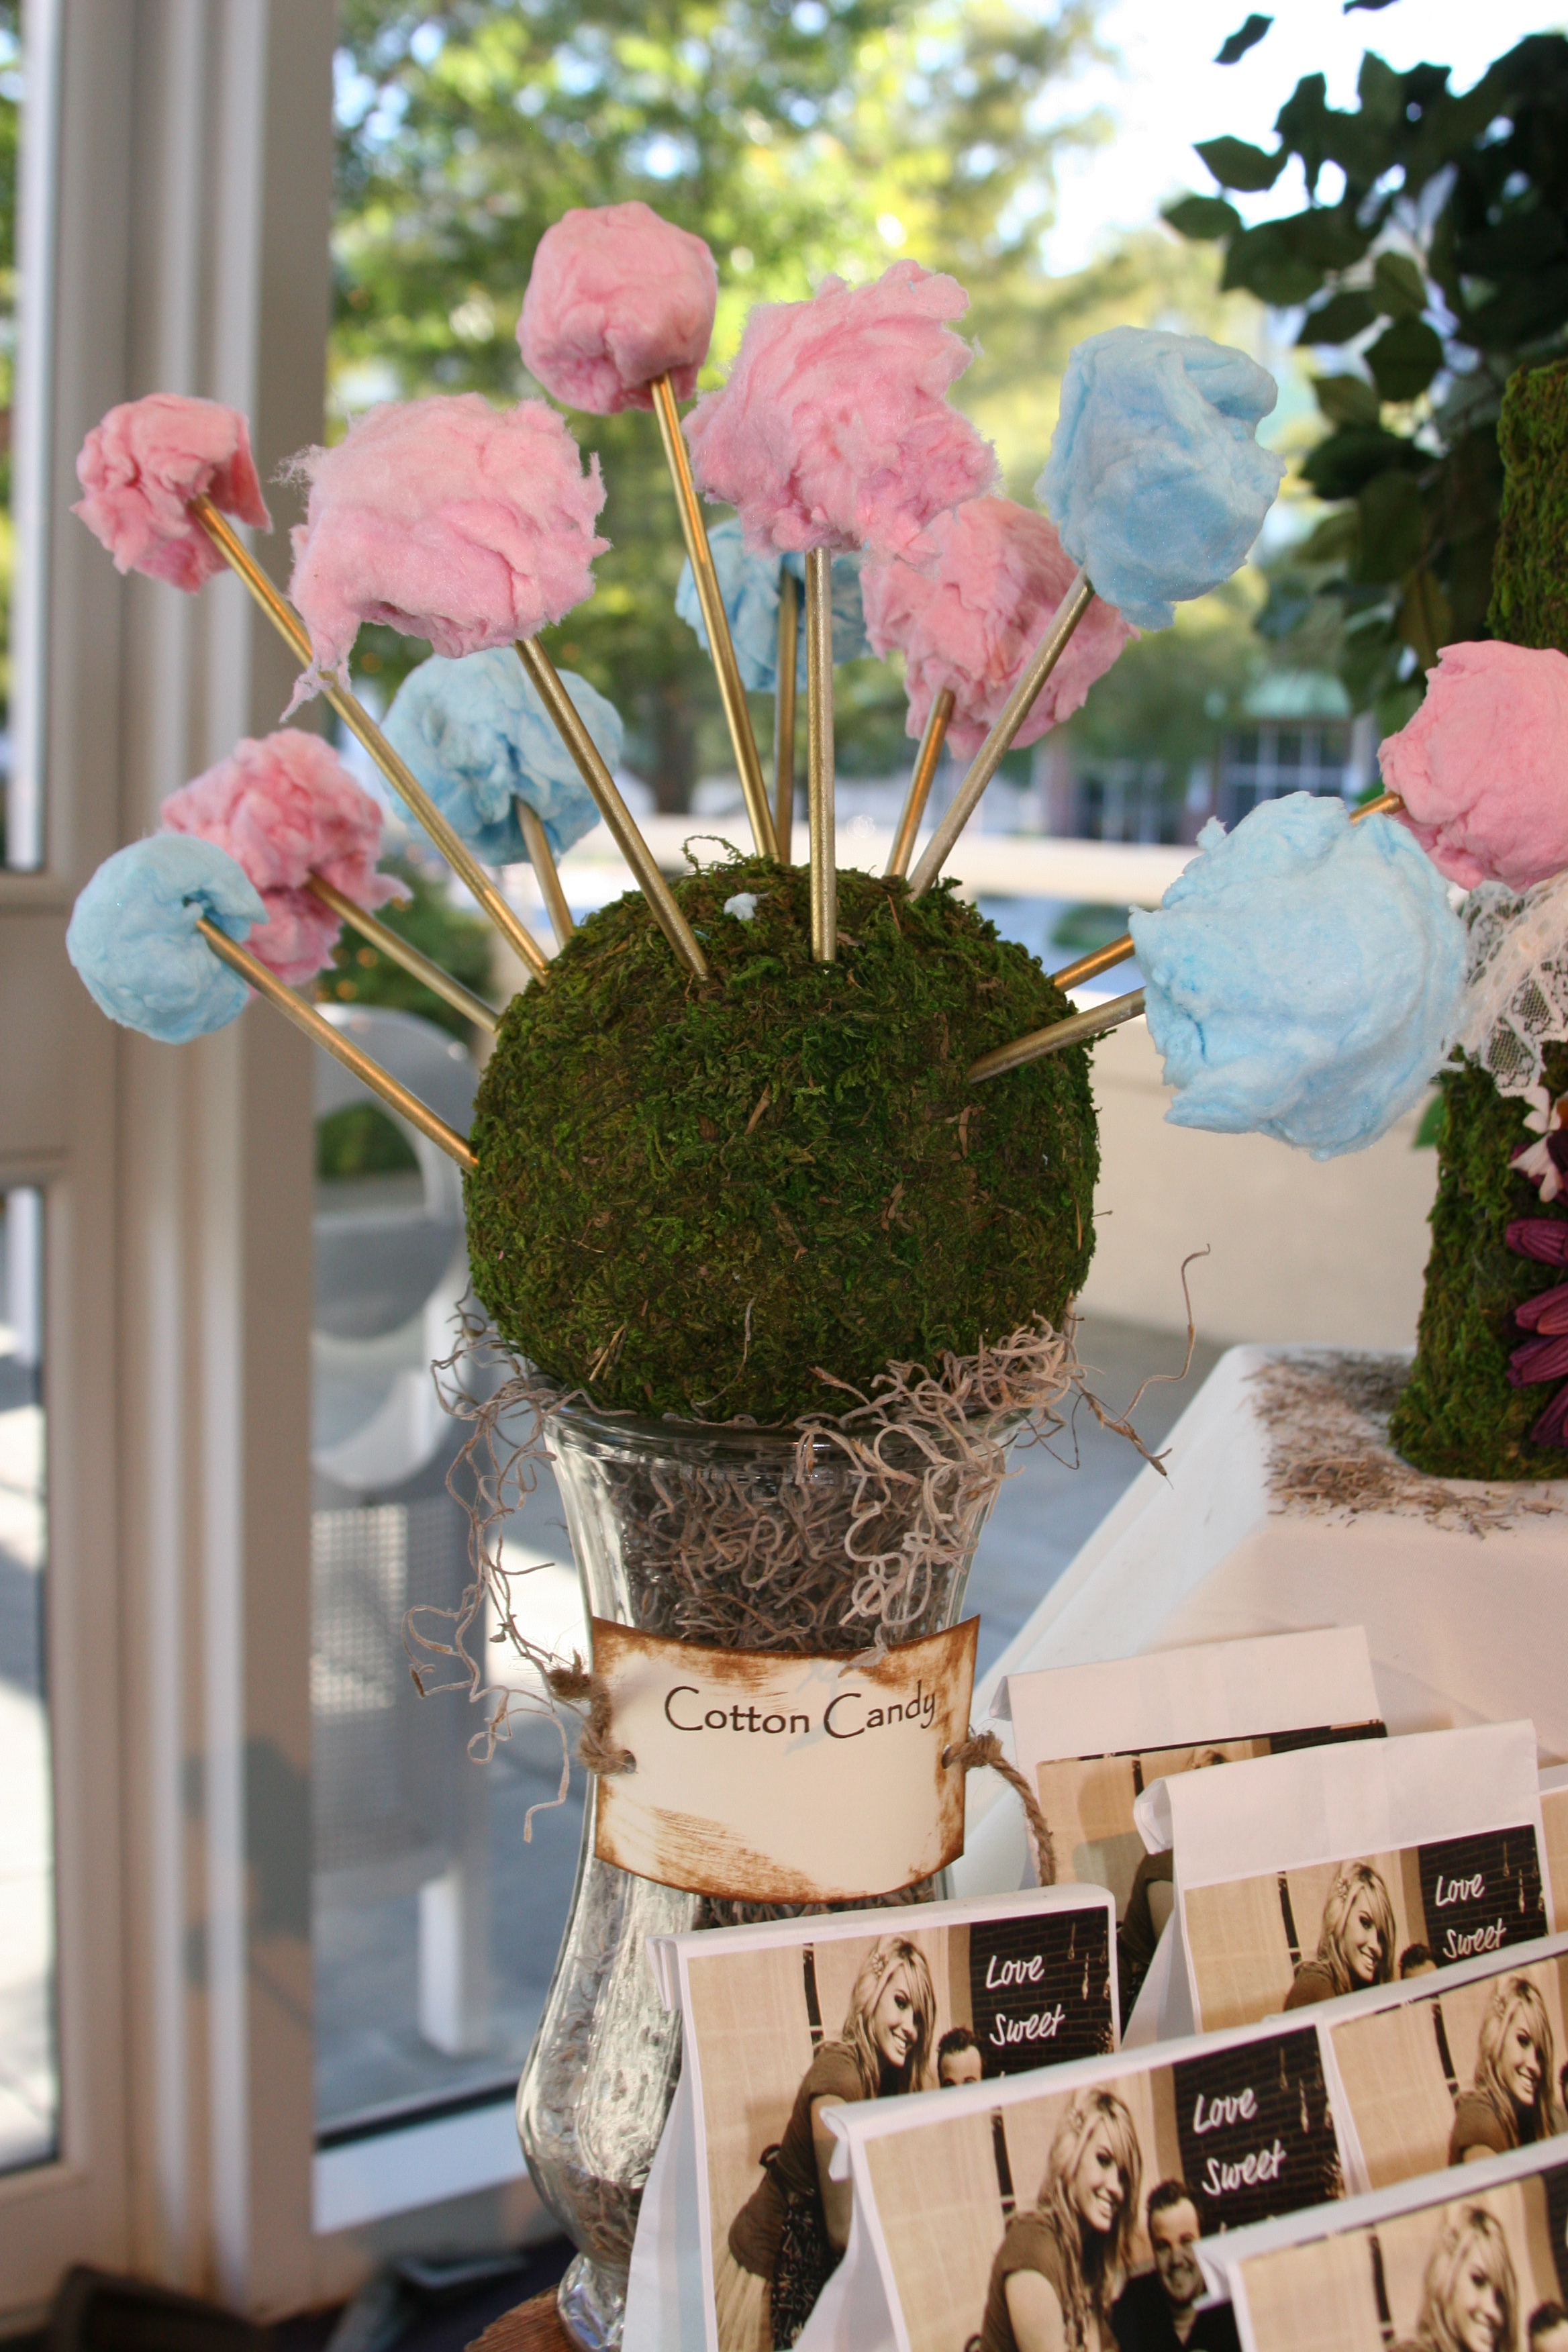 Reception, Flowers & Decor, Cakes, green, brown, cake, Flowers, Candy, Buffet, Inspiration board, Cotton